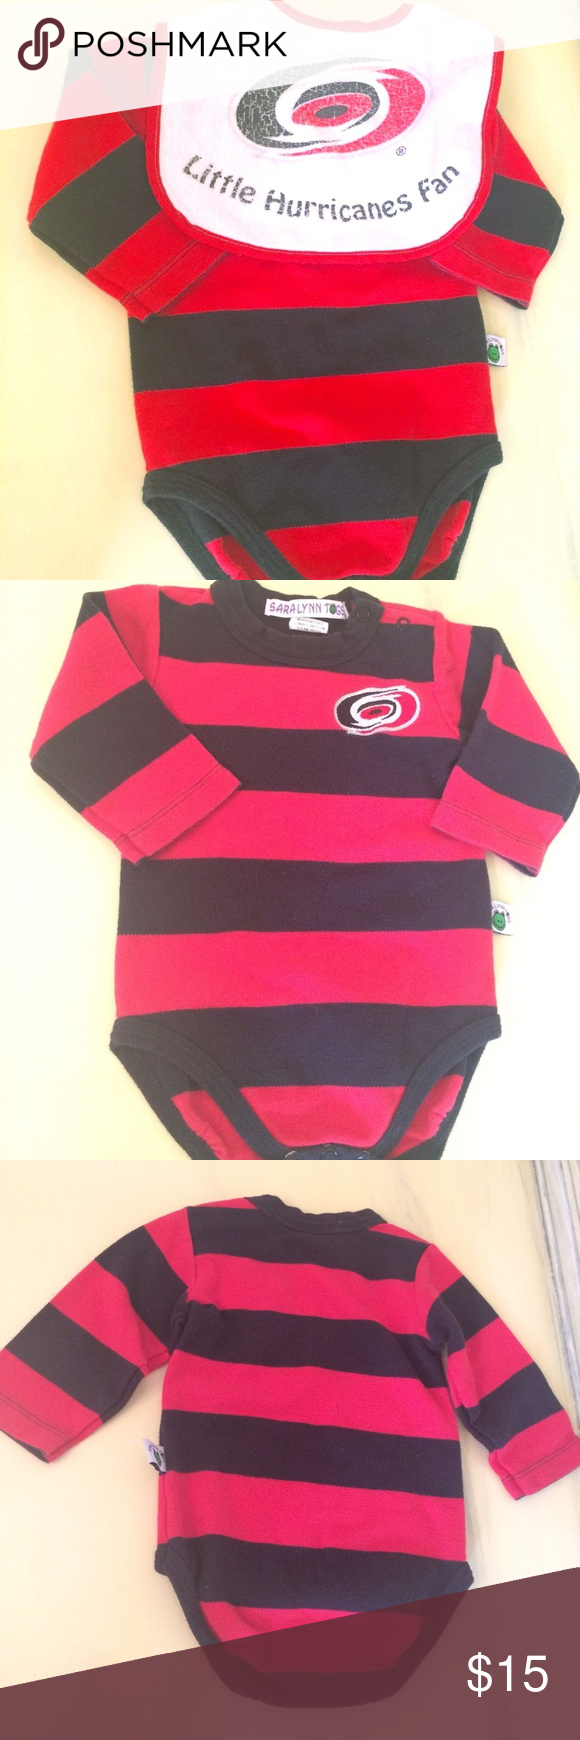 12 Months Baby Boy Hurricanes Bodysuit + Bib Set Here is a 2 piece outfit  for 287e87633b